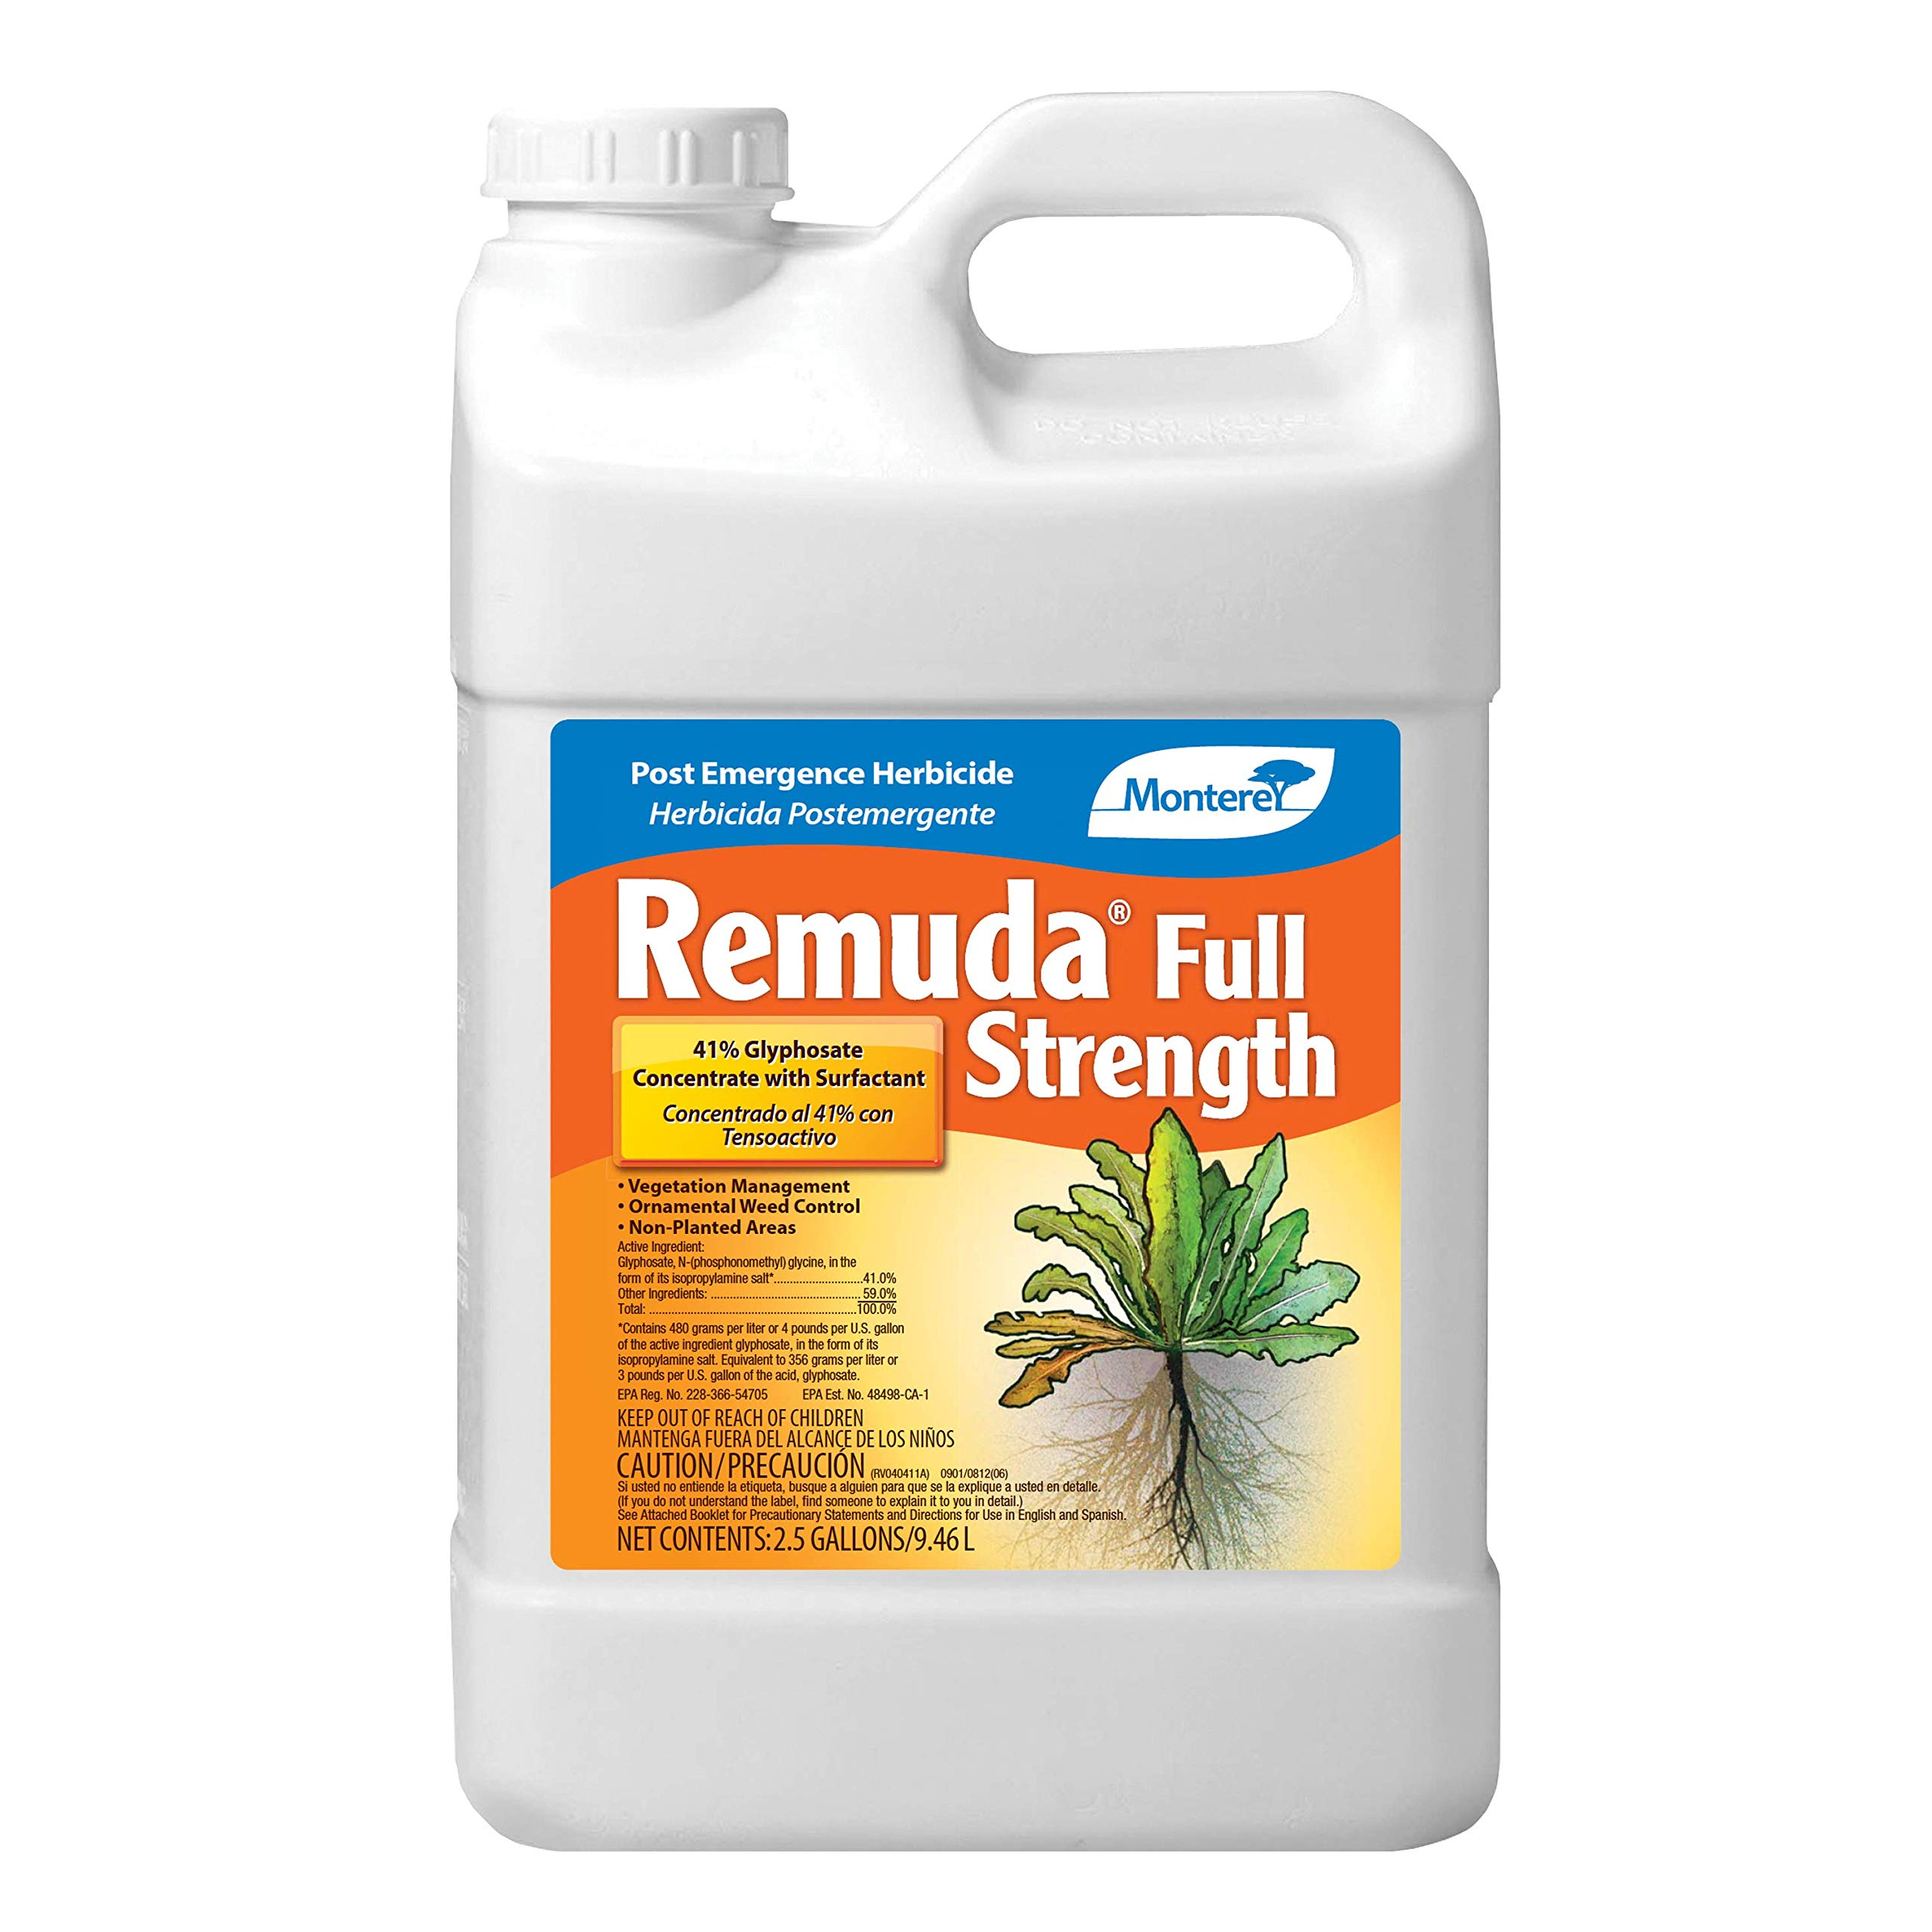 Monterey LG5195 Remuda Full Strength, Non-Selective Post Emergence Herbicide, 2.5 Gal